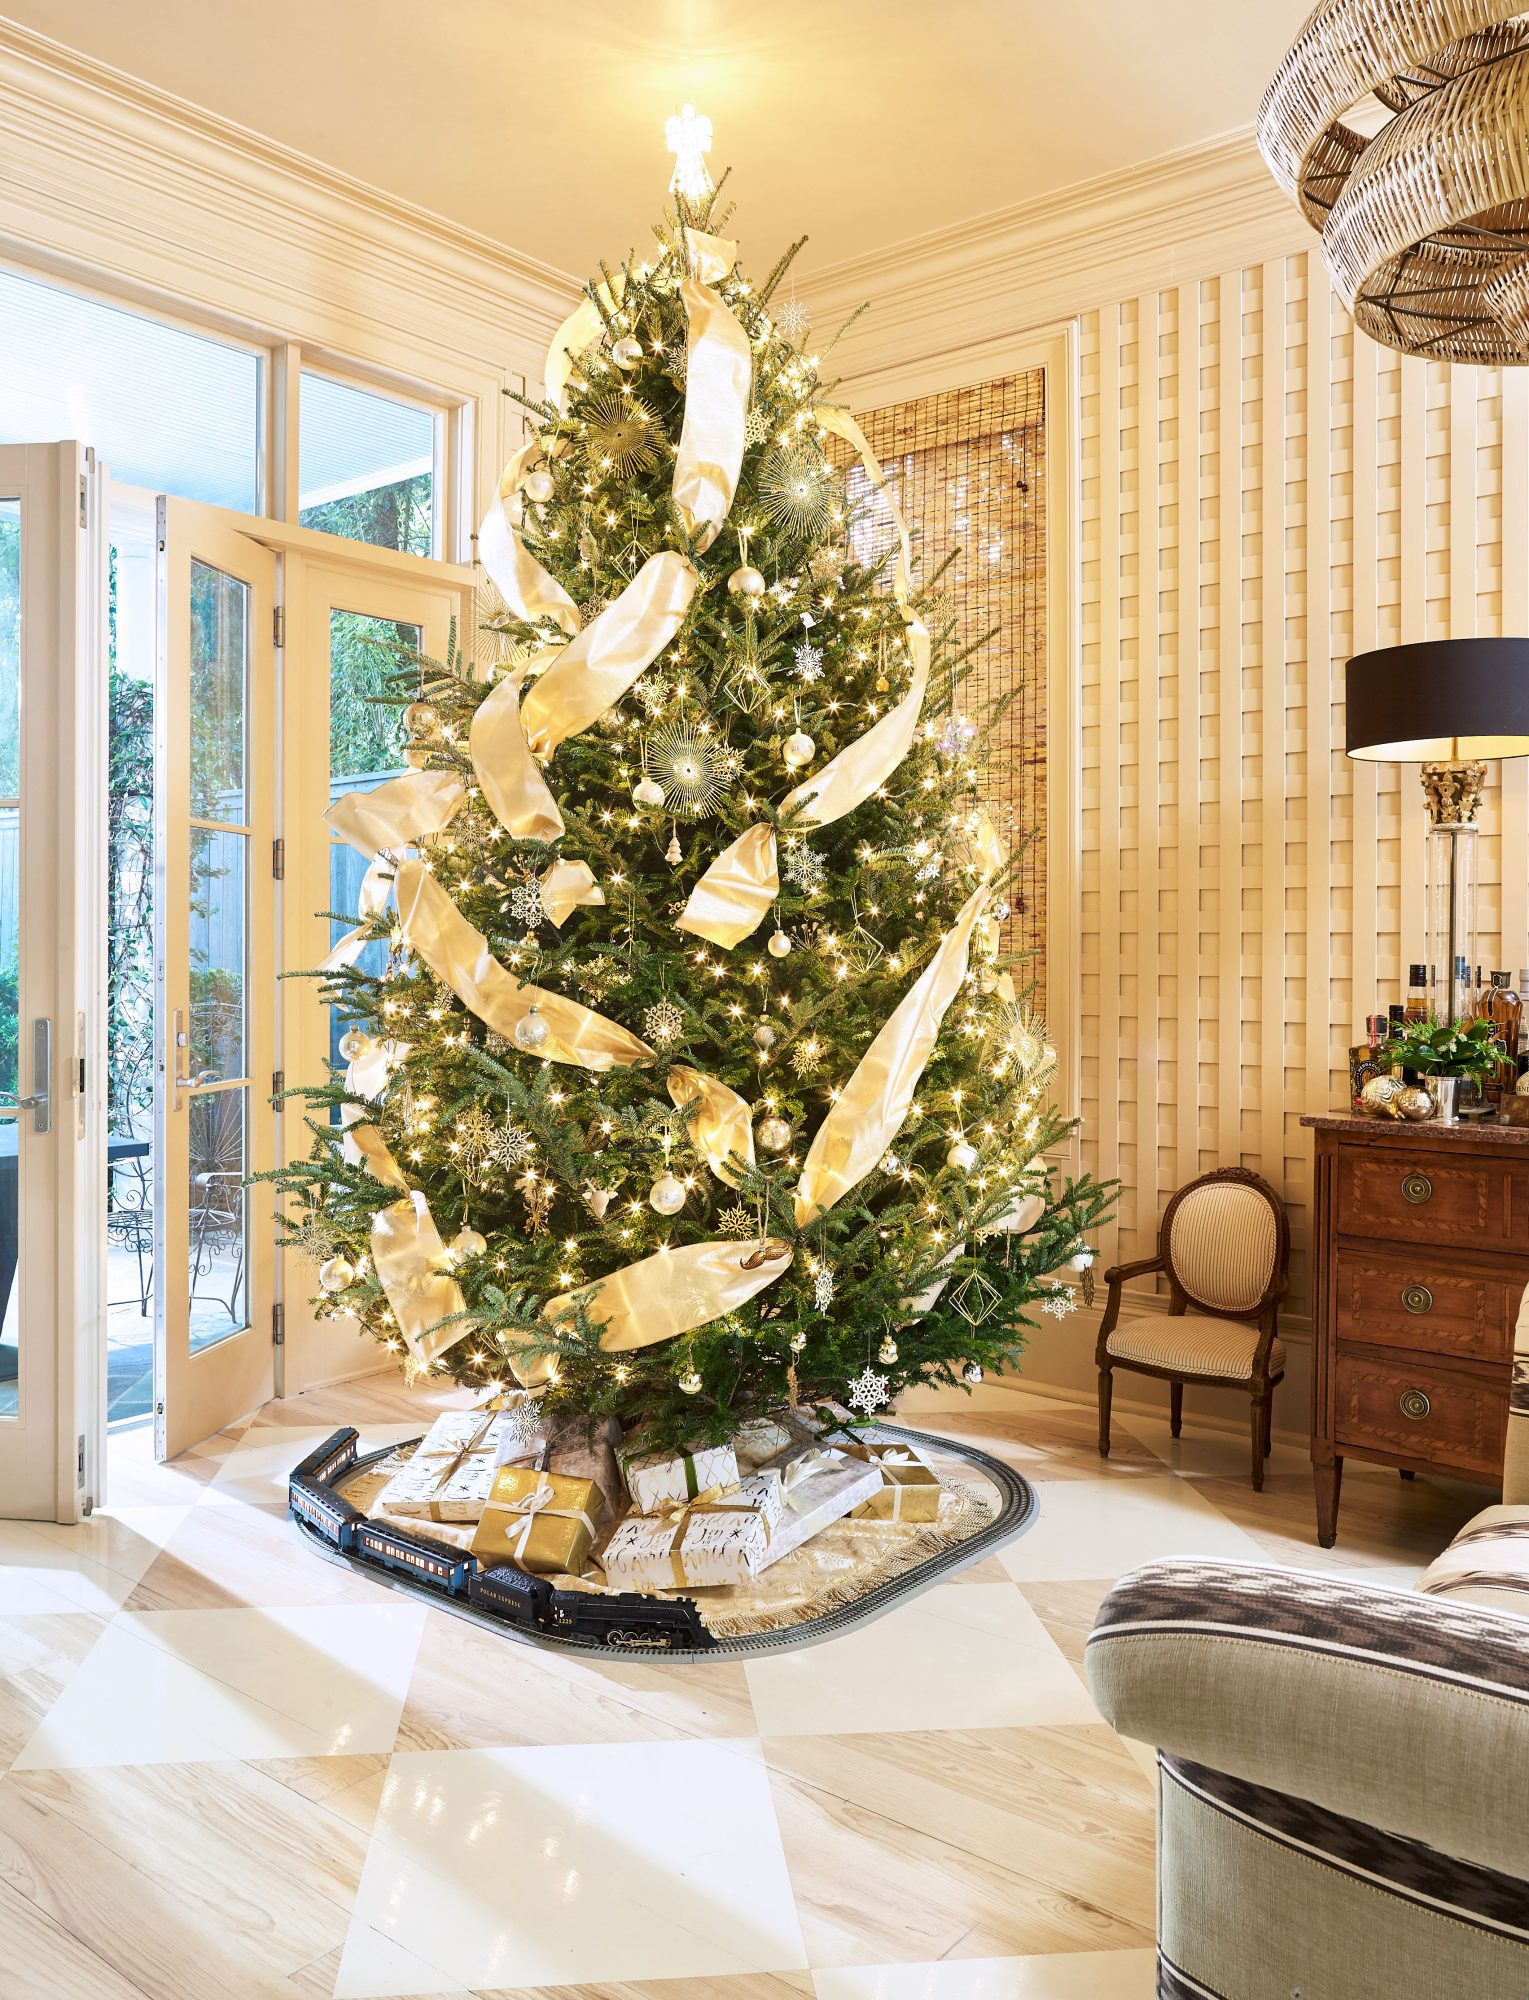 46 Christmas Tree Decoration Ideas - Christmas Trees Photos | Southern  Living